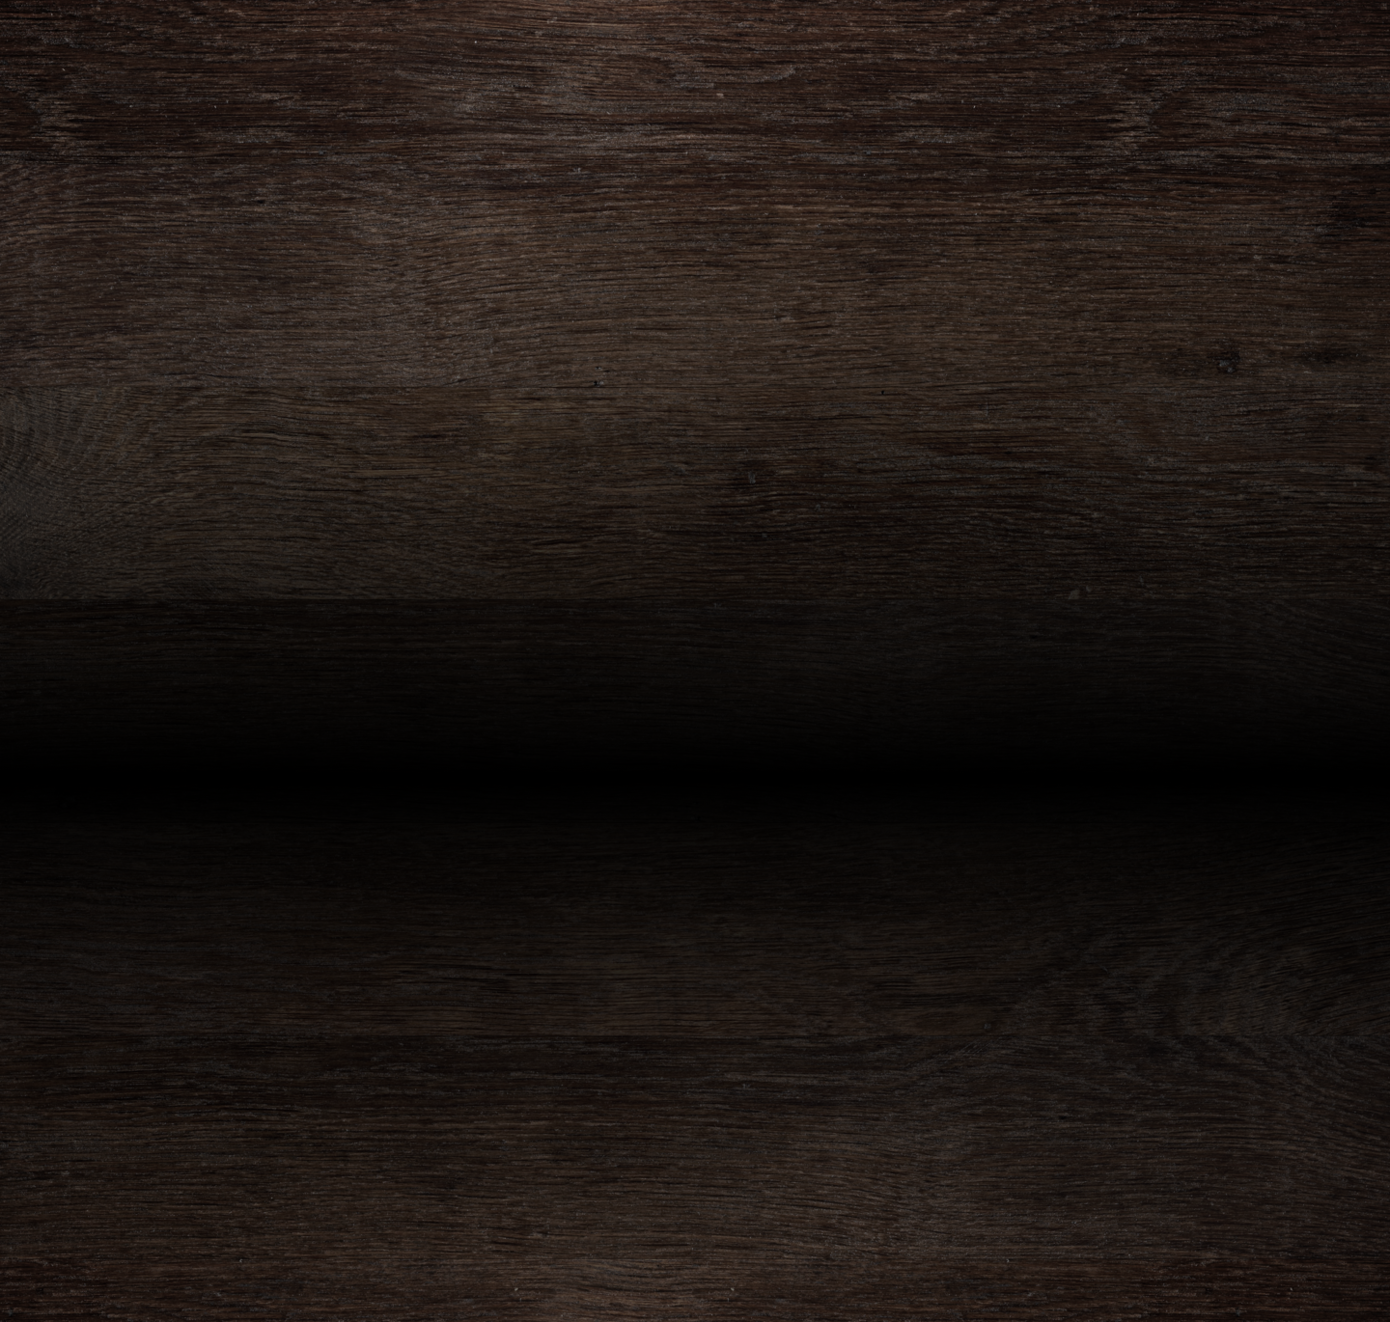 brown wood grain texture background